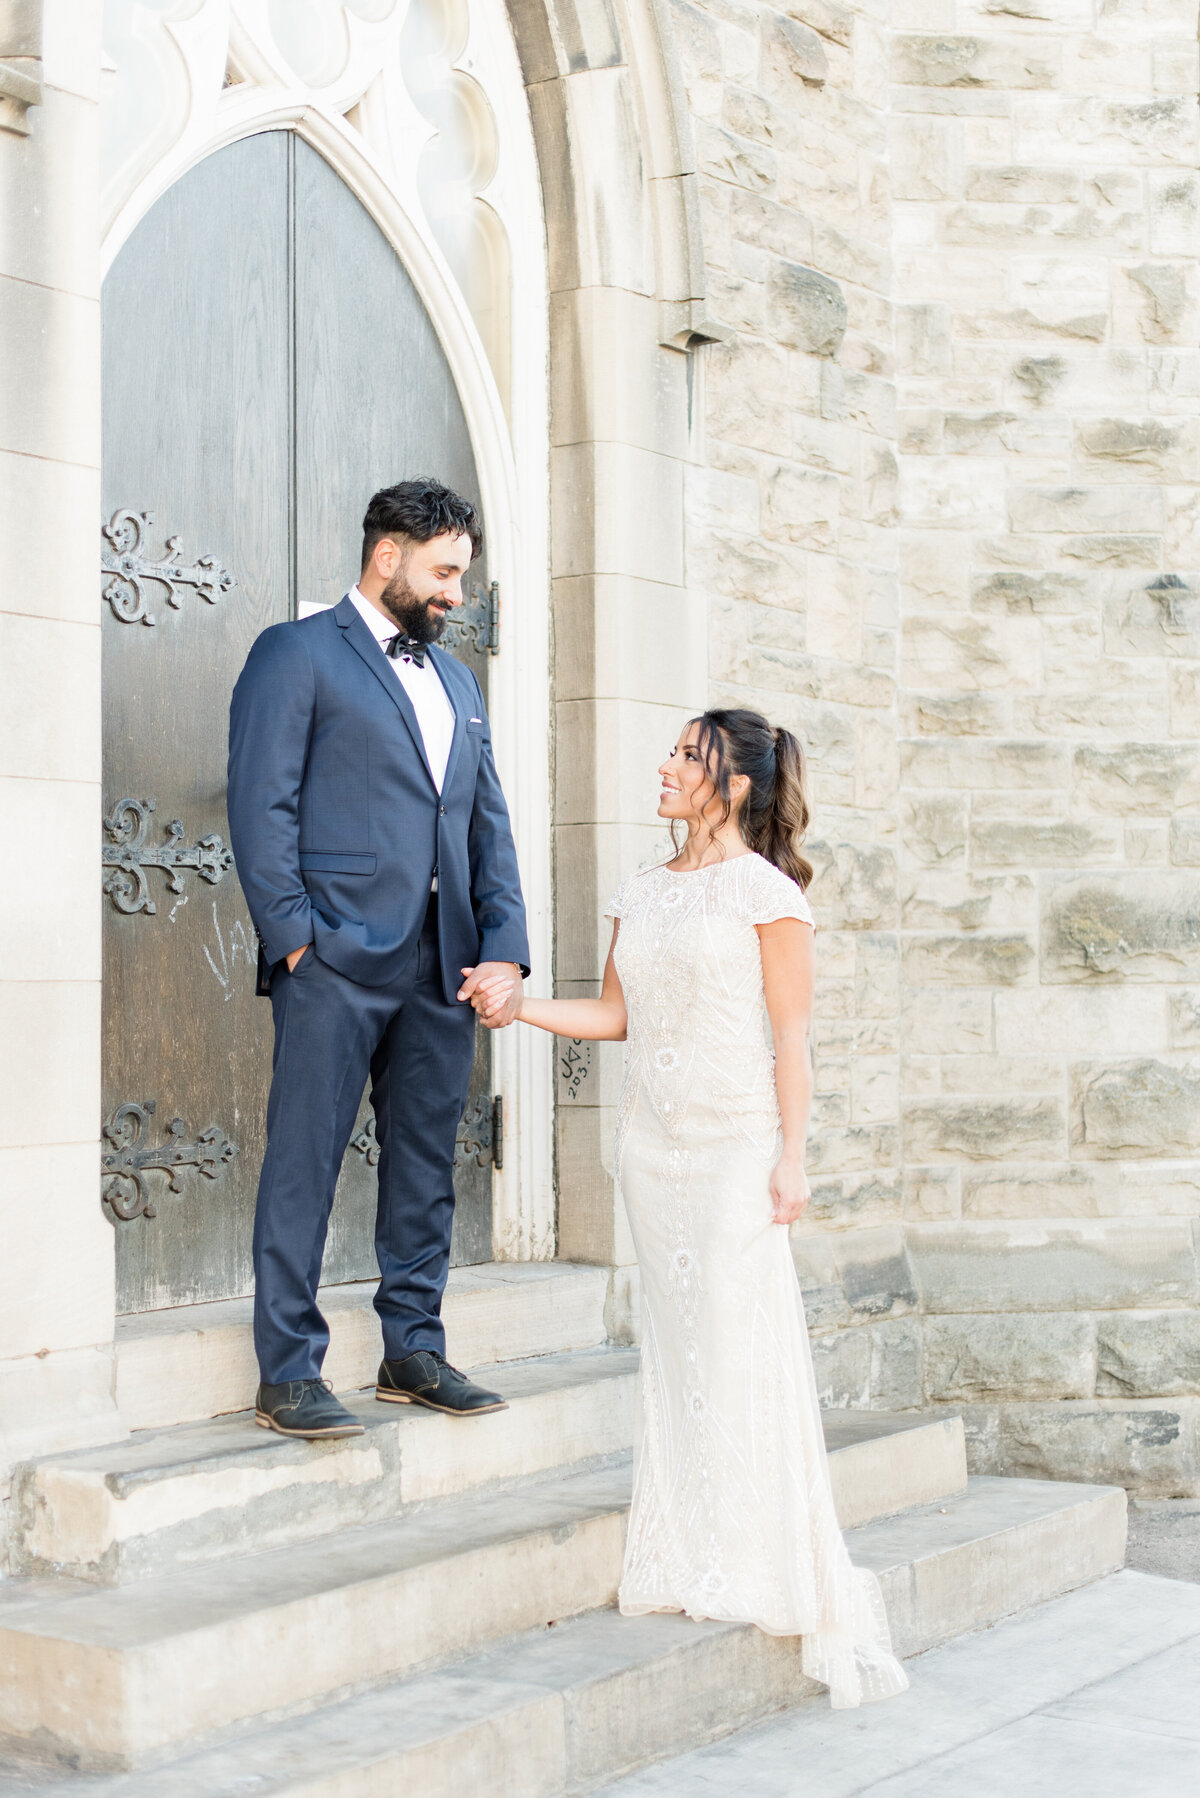 A model couple pose outside St. Andrew's Church in Thunder Bay during an editorial shoot